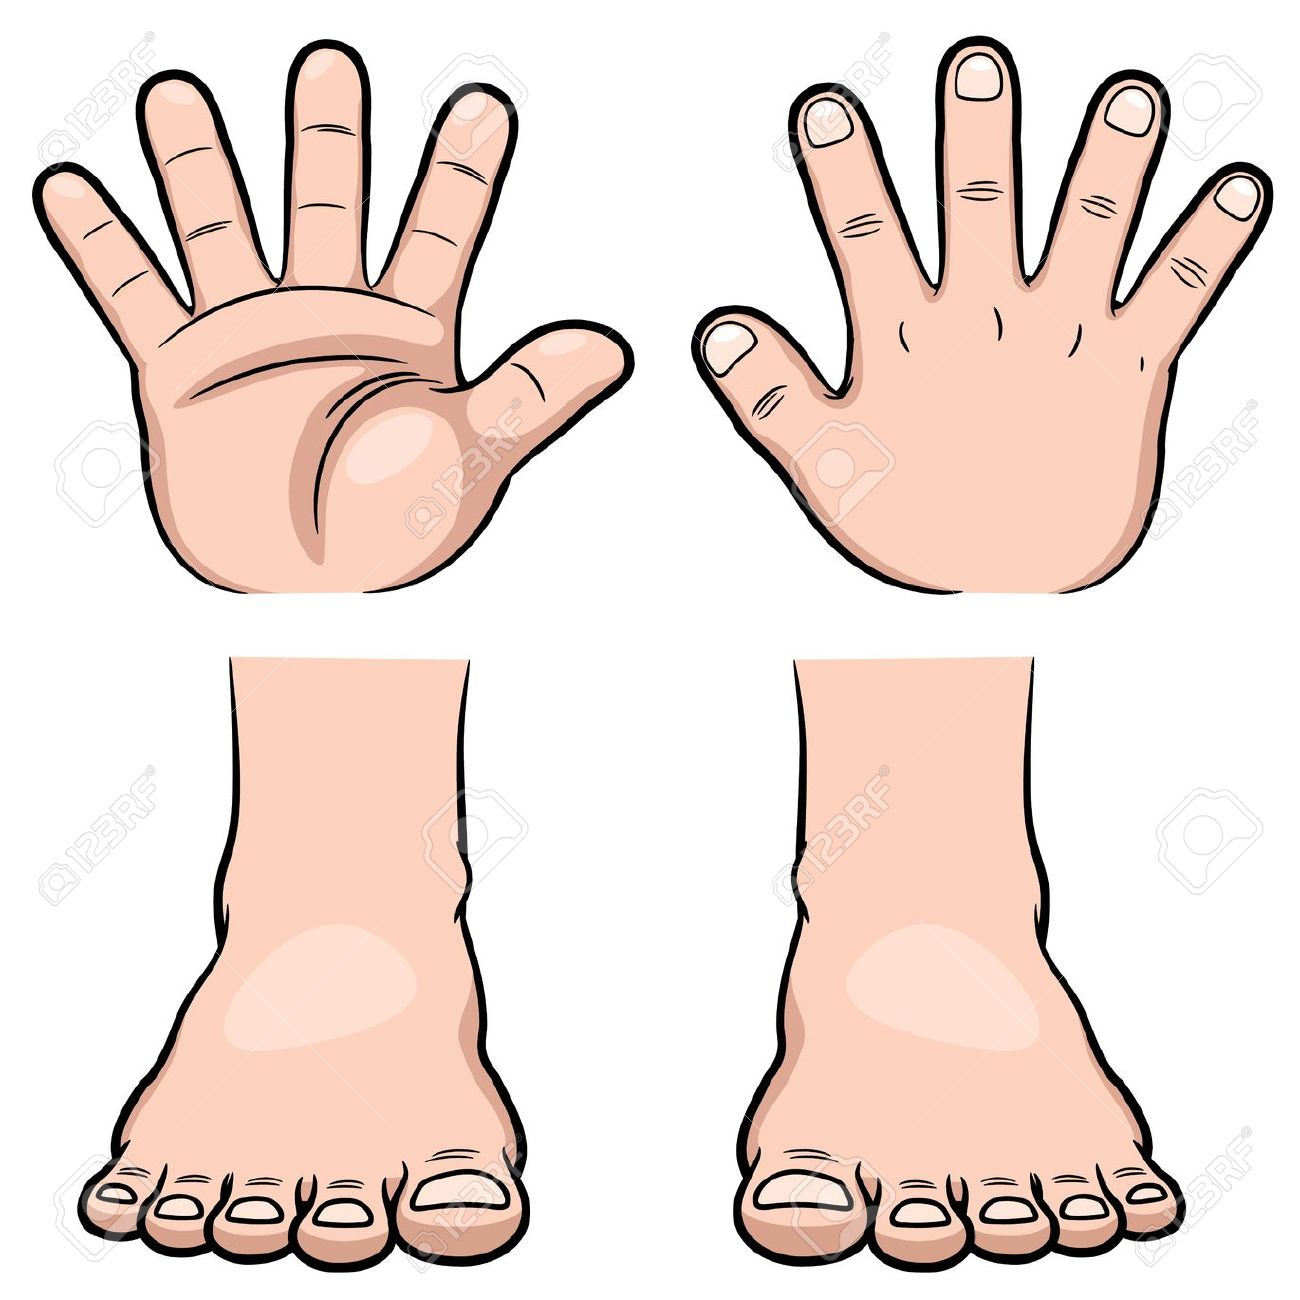 Clipart hands feet jpg freeuse download Hands And Feet Clipart | Free download best Hands And Feet Clipart ... jpg freeuse download